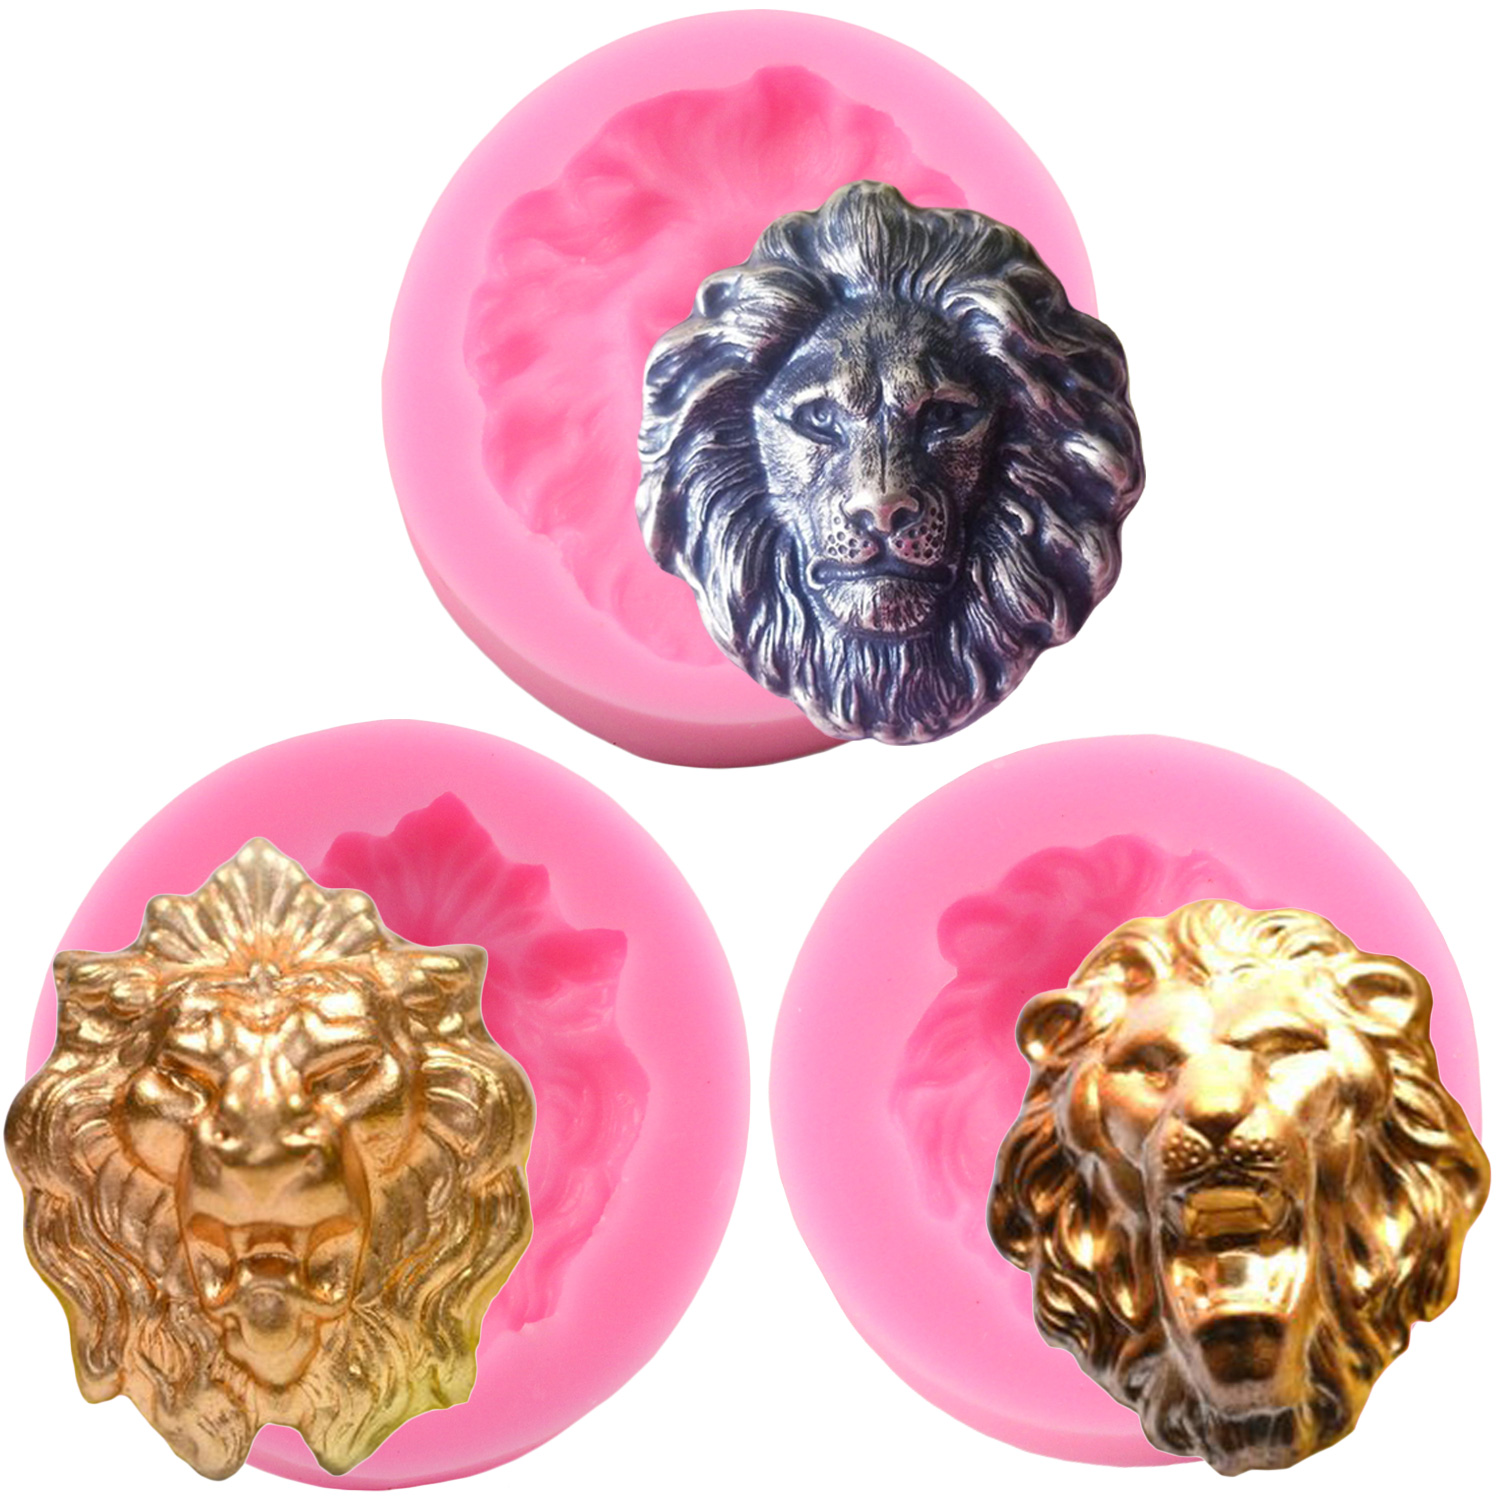 3D Lion Head Silicone Mold Fondant Soap Resin Clay Molds Cake Baking Decorating Tools Chocolate Gumpaste Candy Mould|Clay Extruders|   - AliExpress